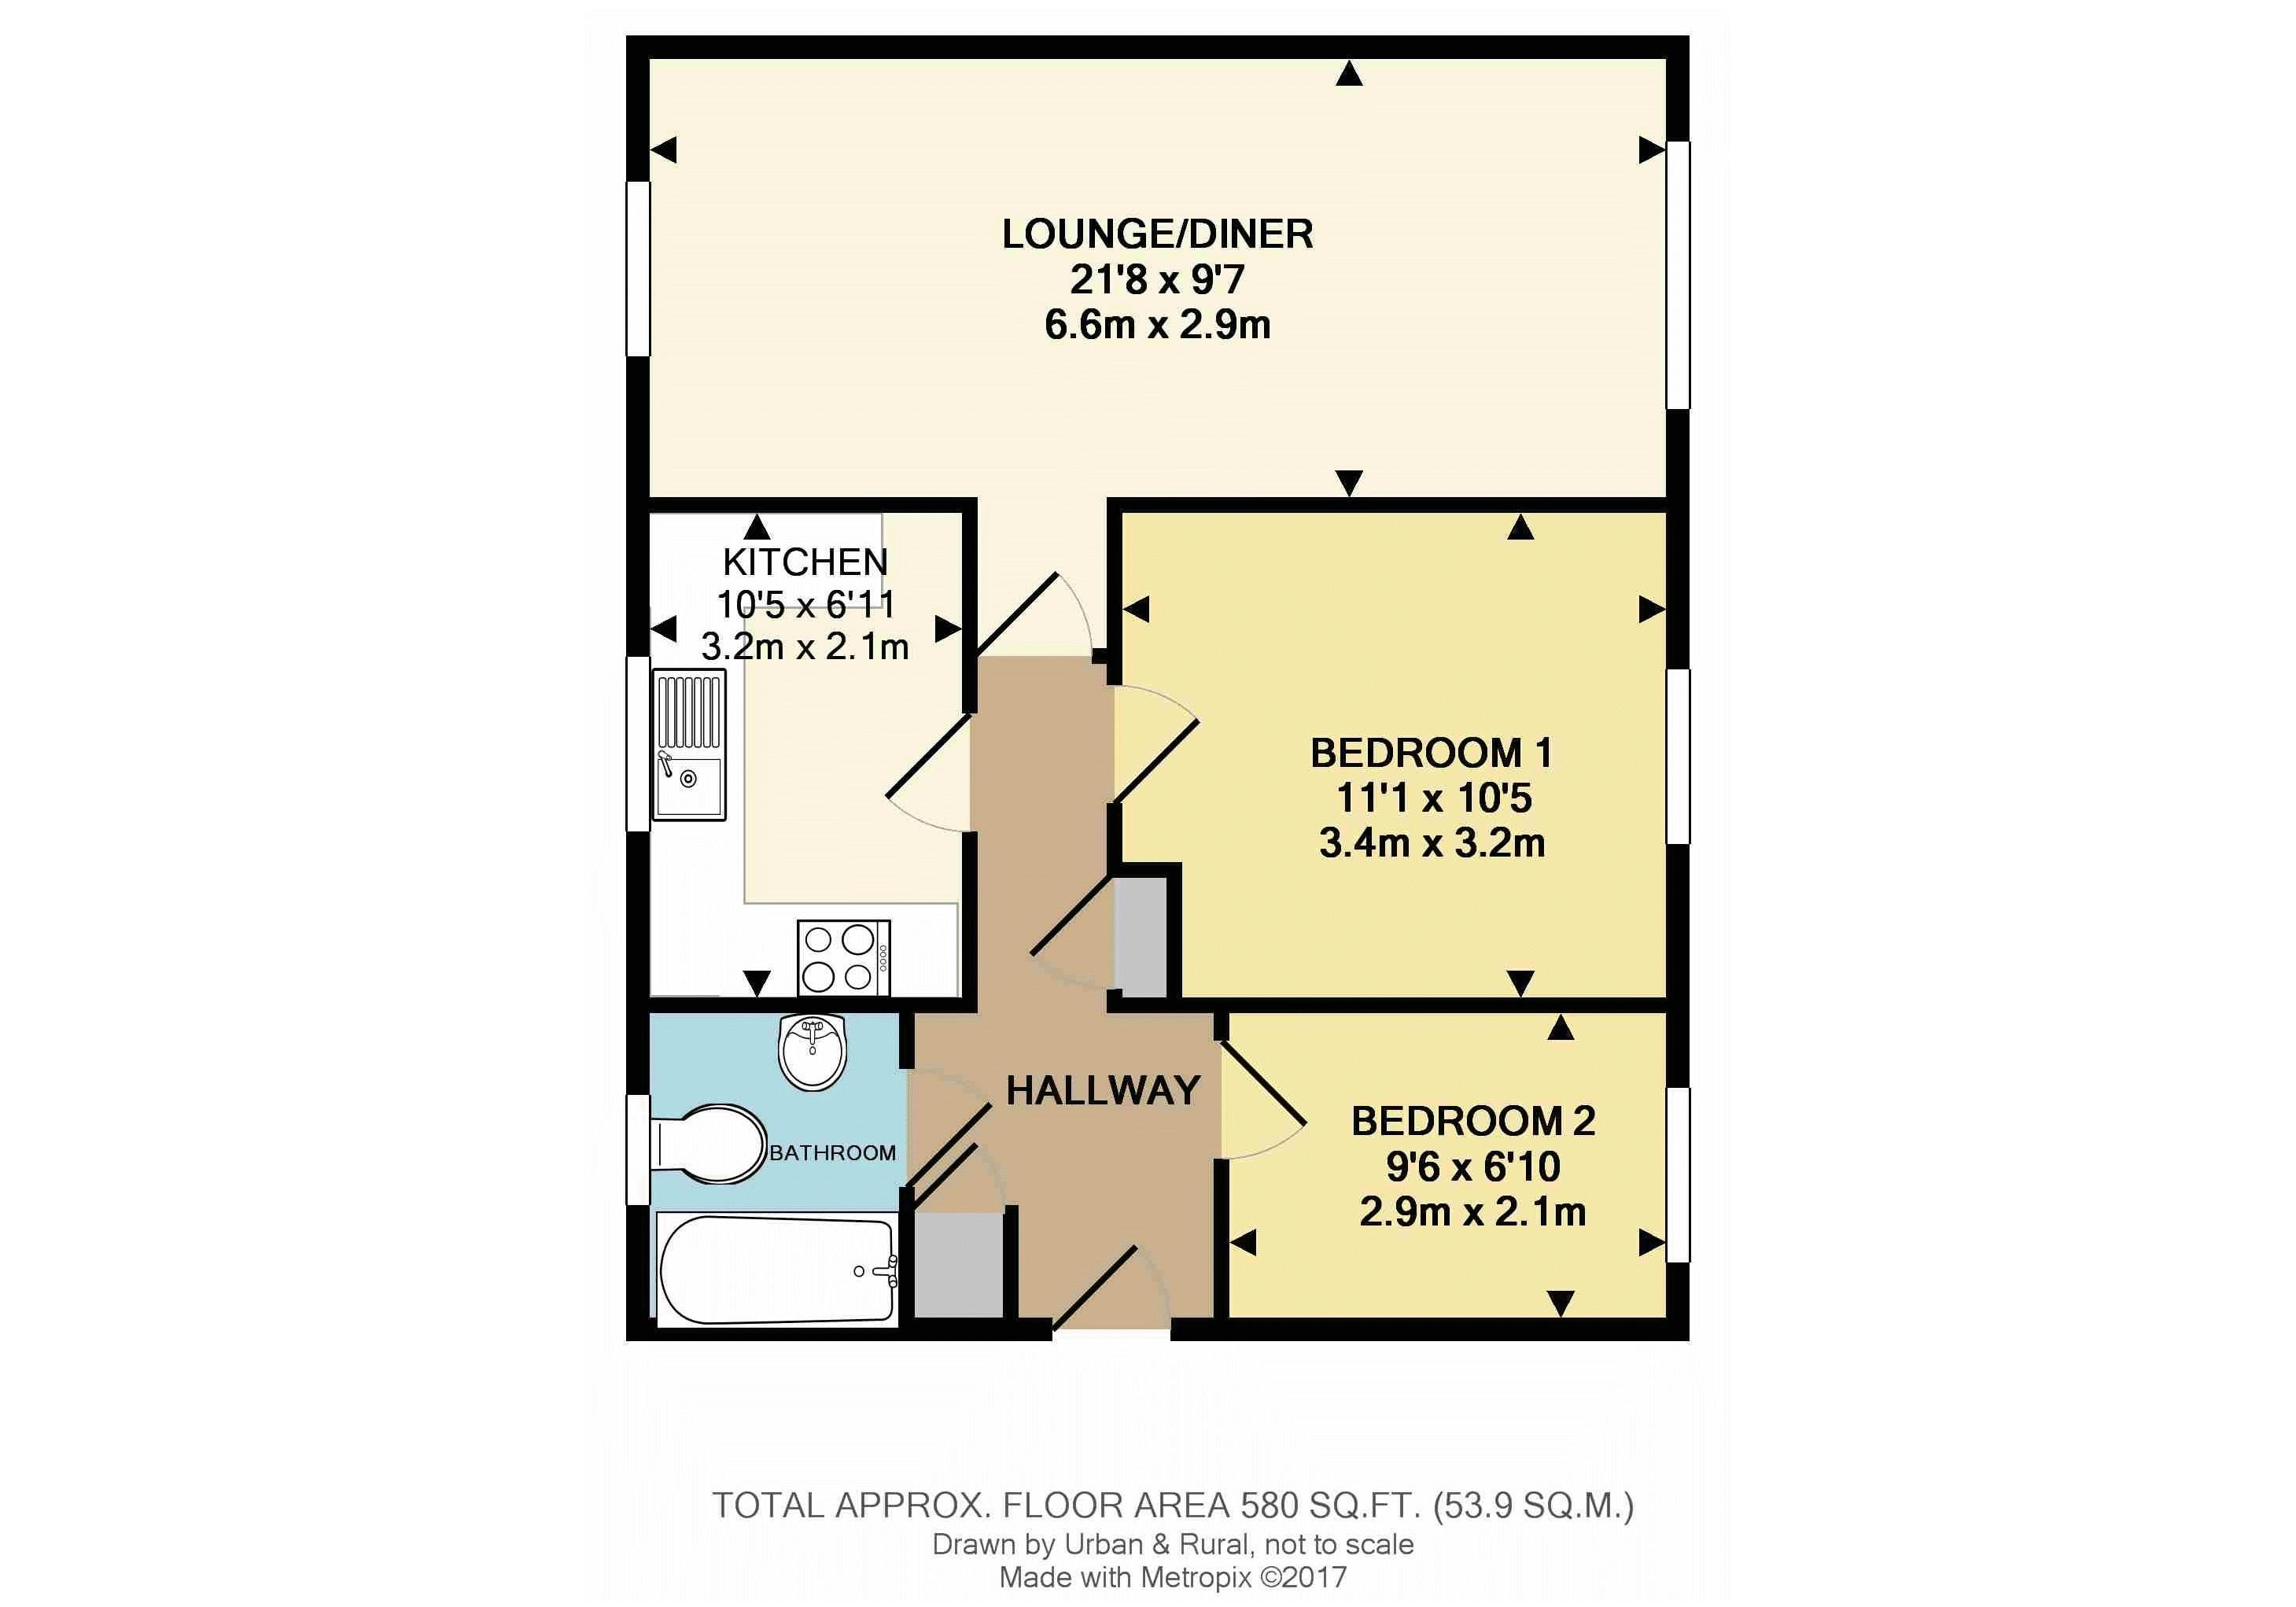 2 bedroom flat for sale in flitwick for How much is a bathroom worth on an appraisal